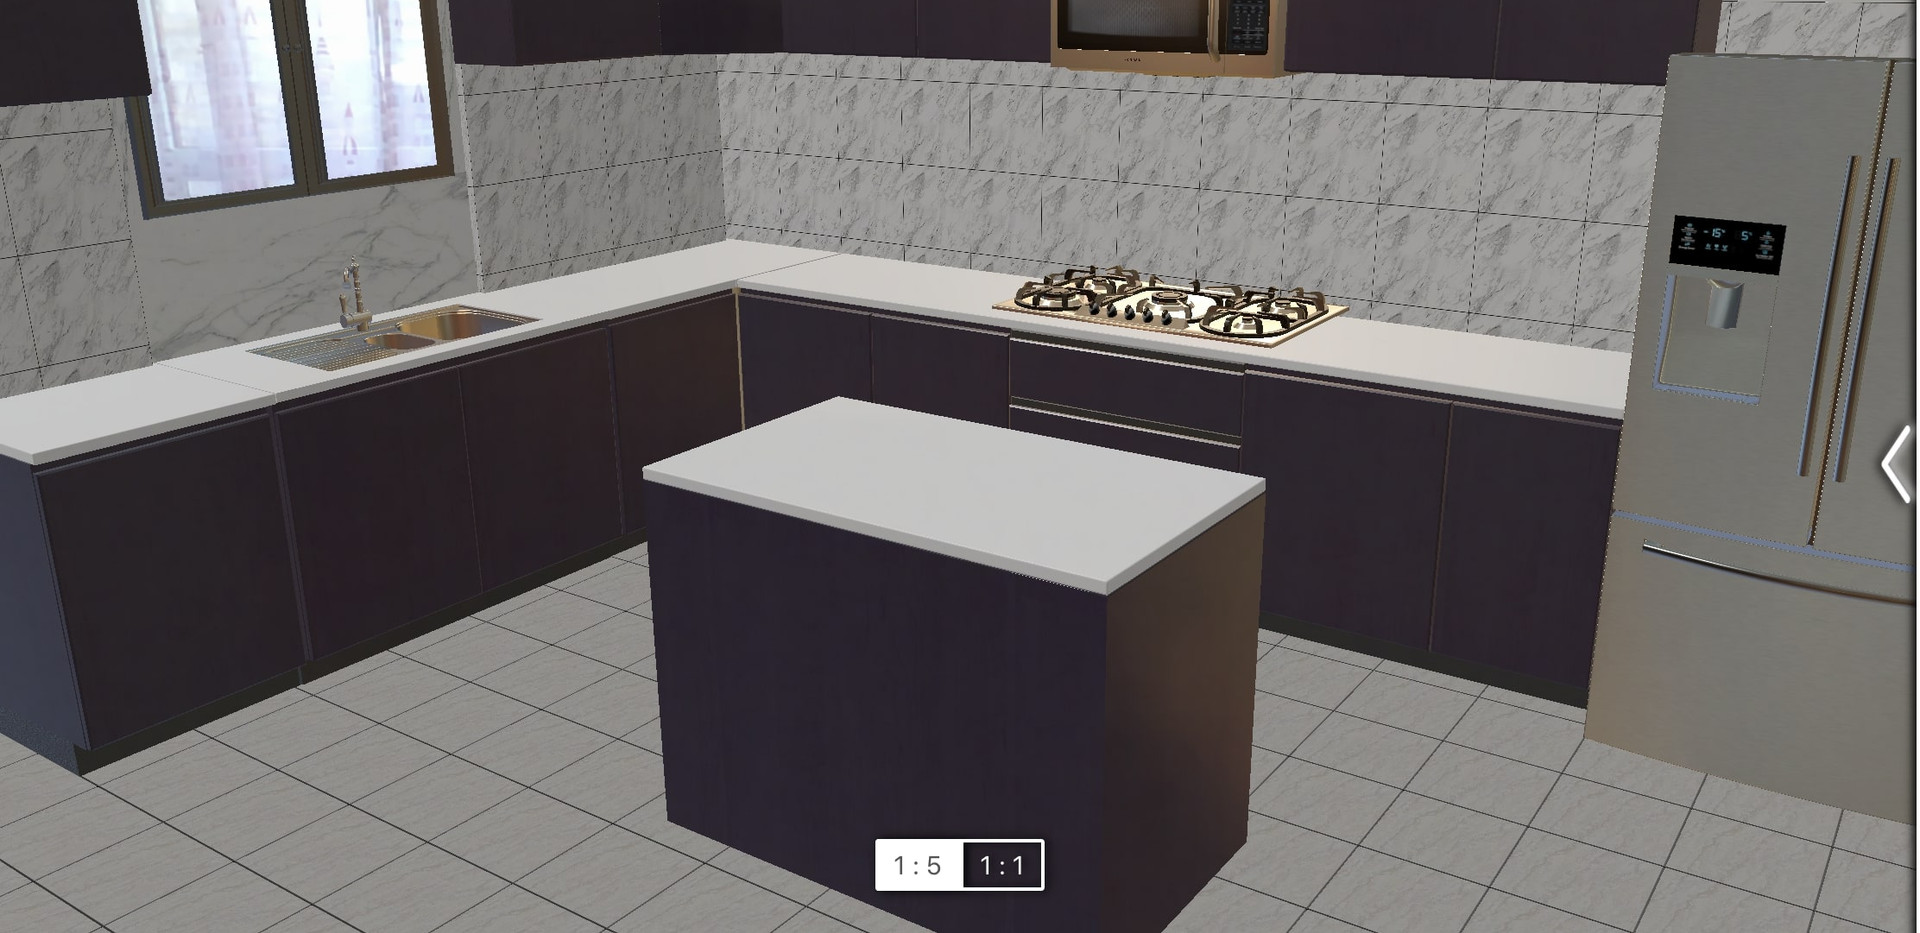 Kitchen Design3.jpg